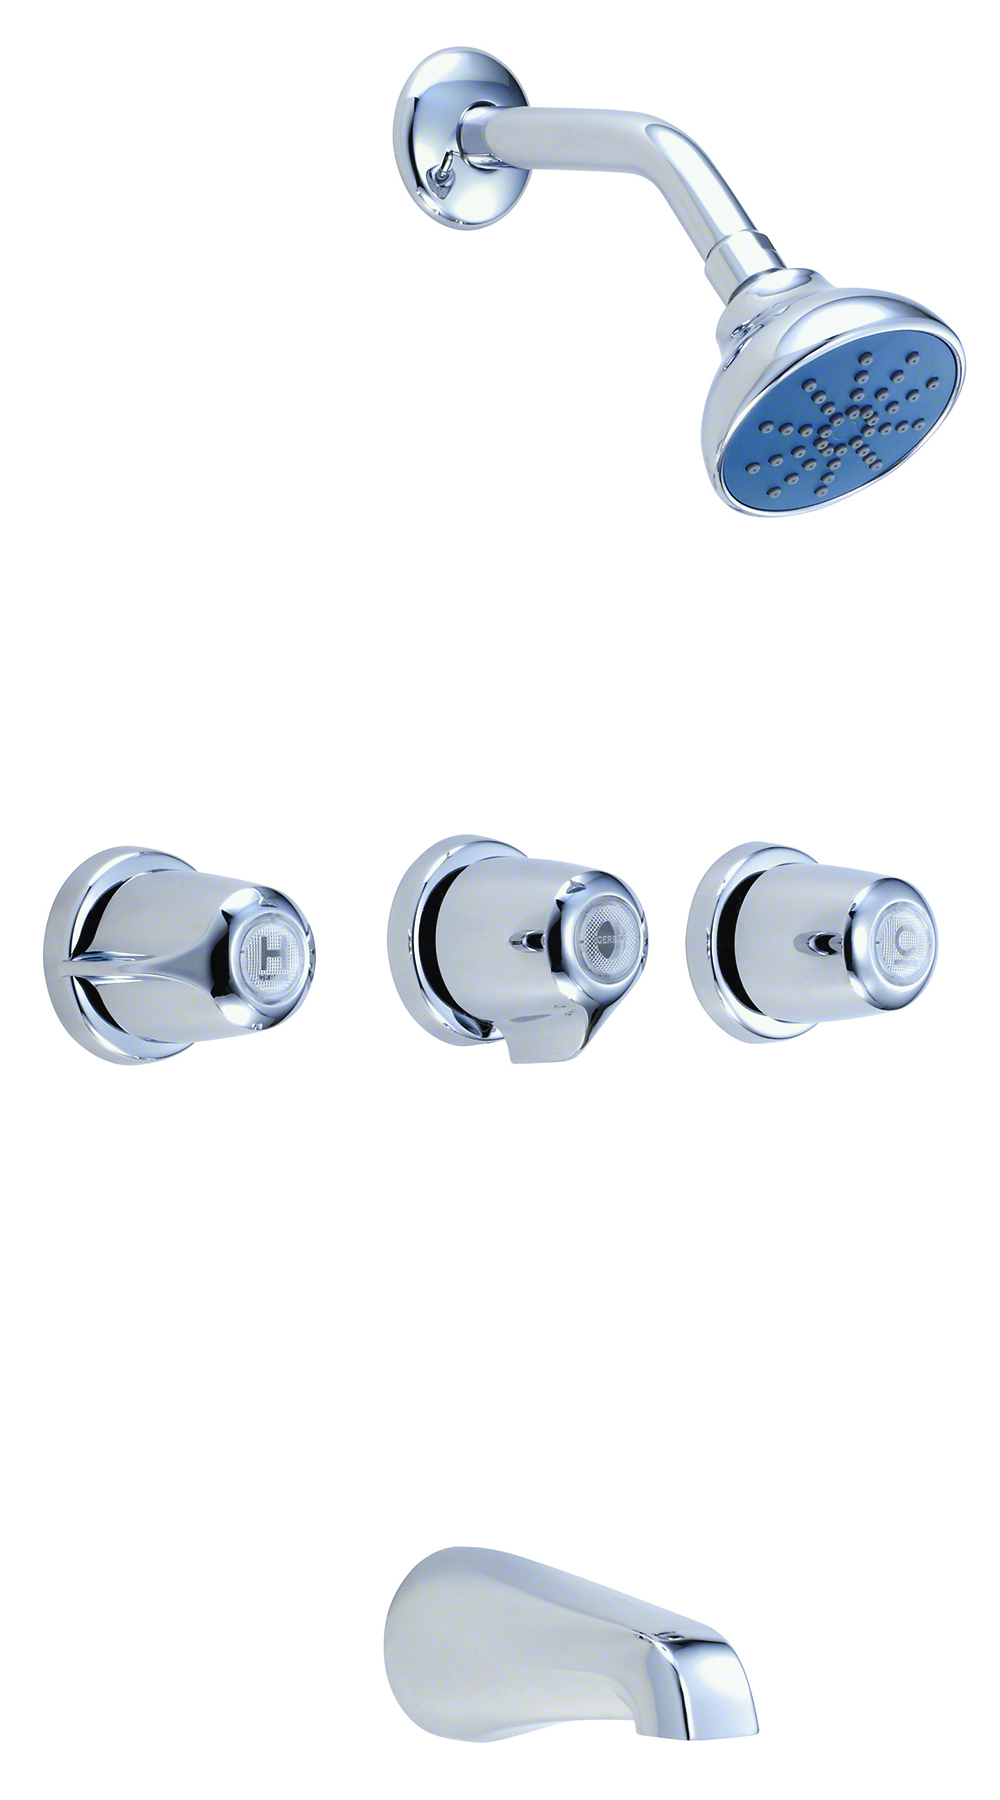 hight resolution of gerber classics three handle threaded escutcheon tub shower fitting with ips sweat connections threaded spout 1 75gpm gerber plumbing